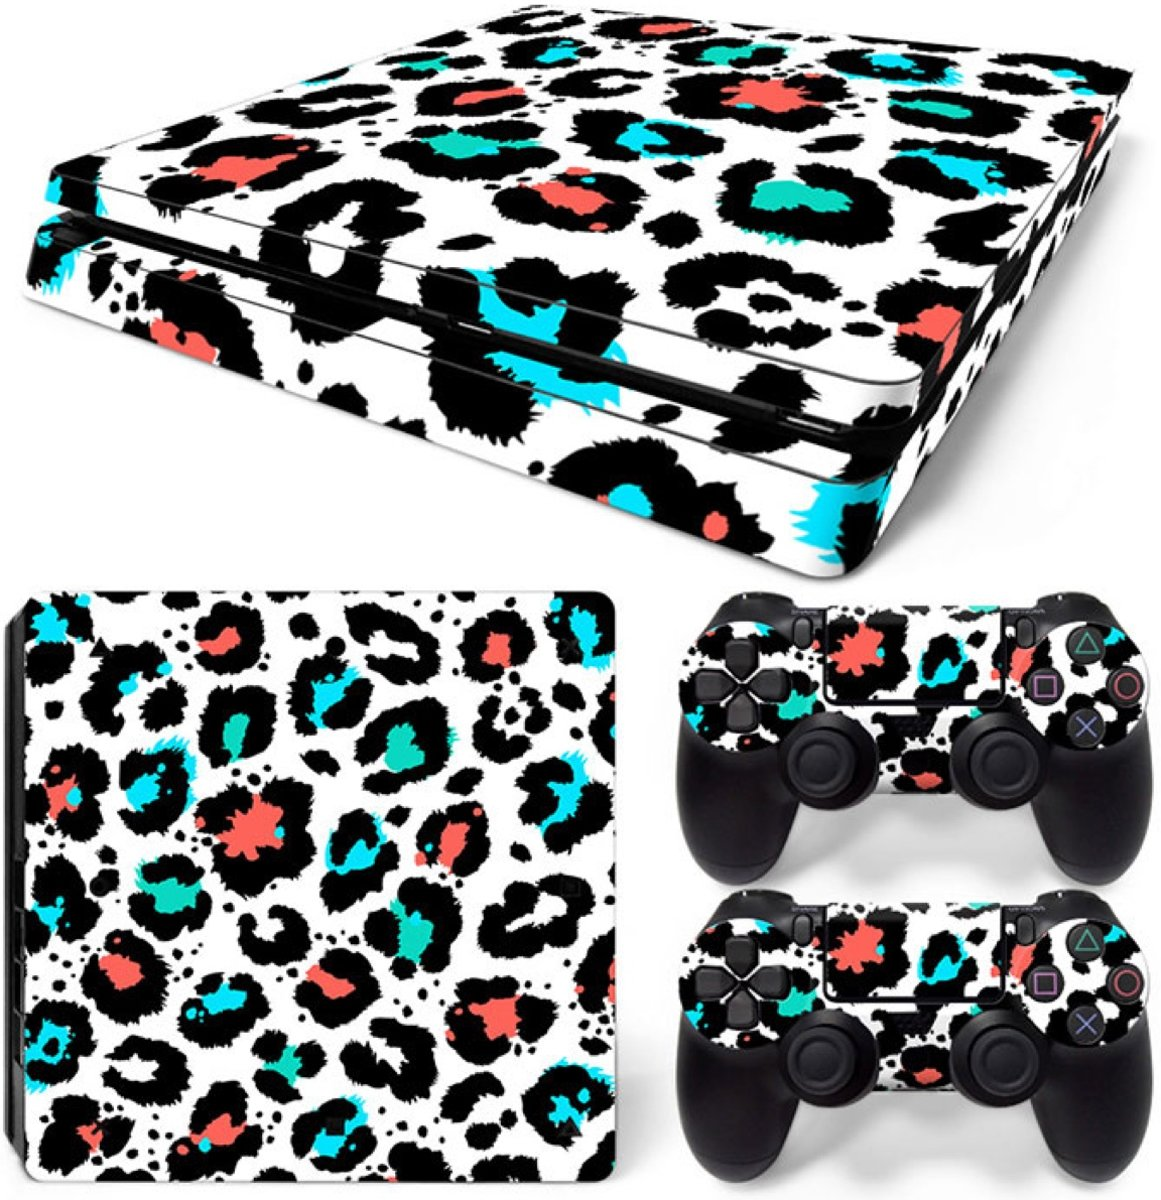 Luipaard Print Multi - PS4 Slim Console Skins PlayStation Stickers